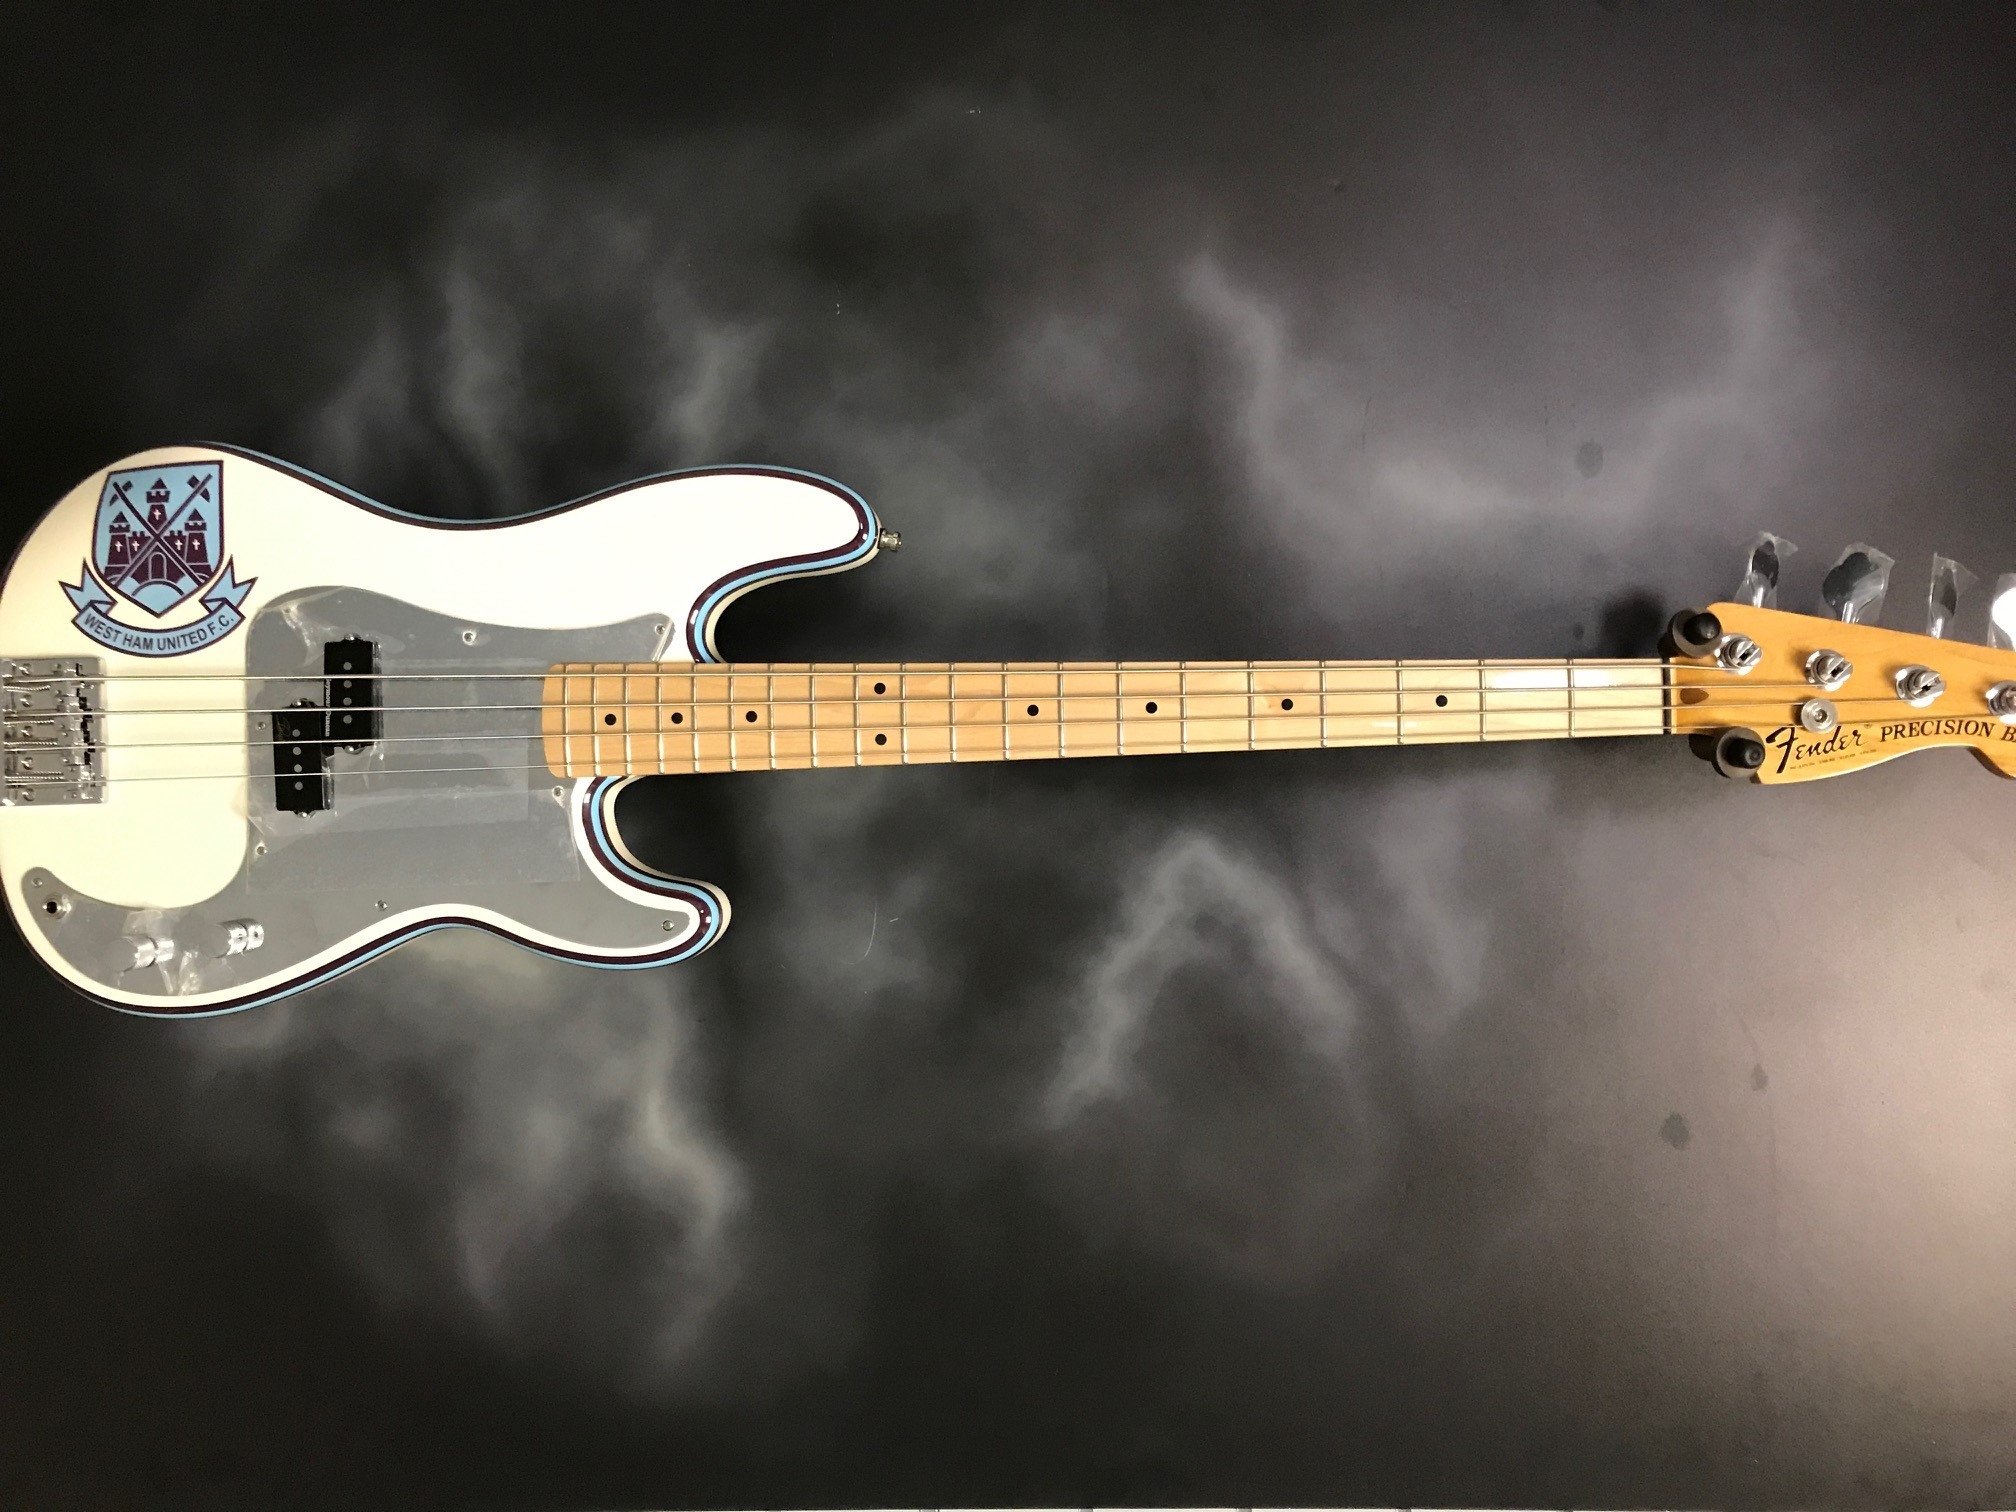 Fender - Steve Harris Signature Precision Bass